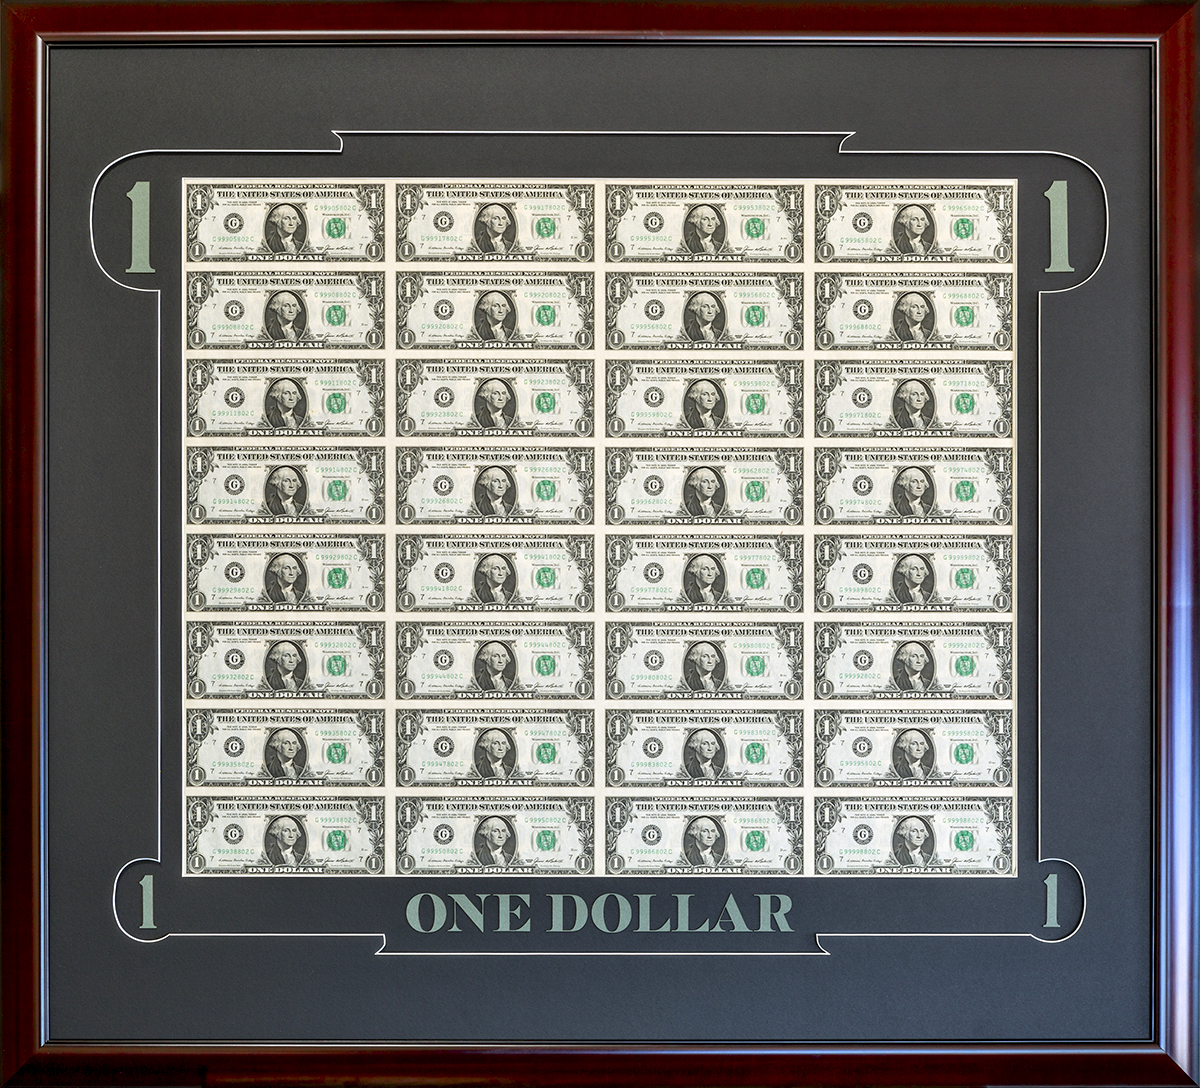 $1 Bill Sheet, web.jpg